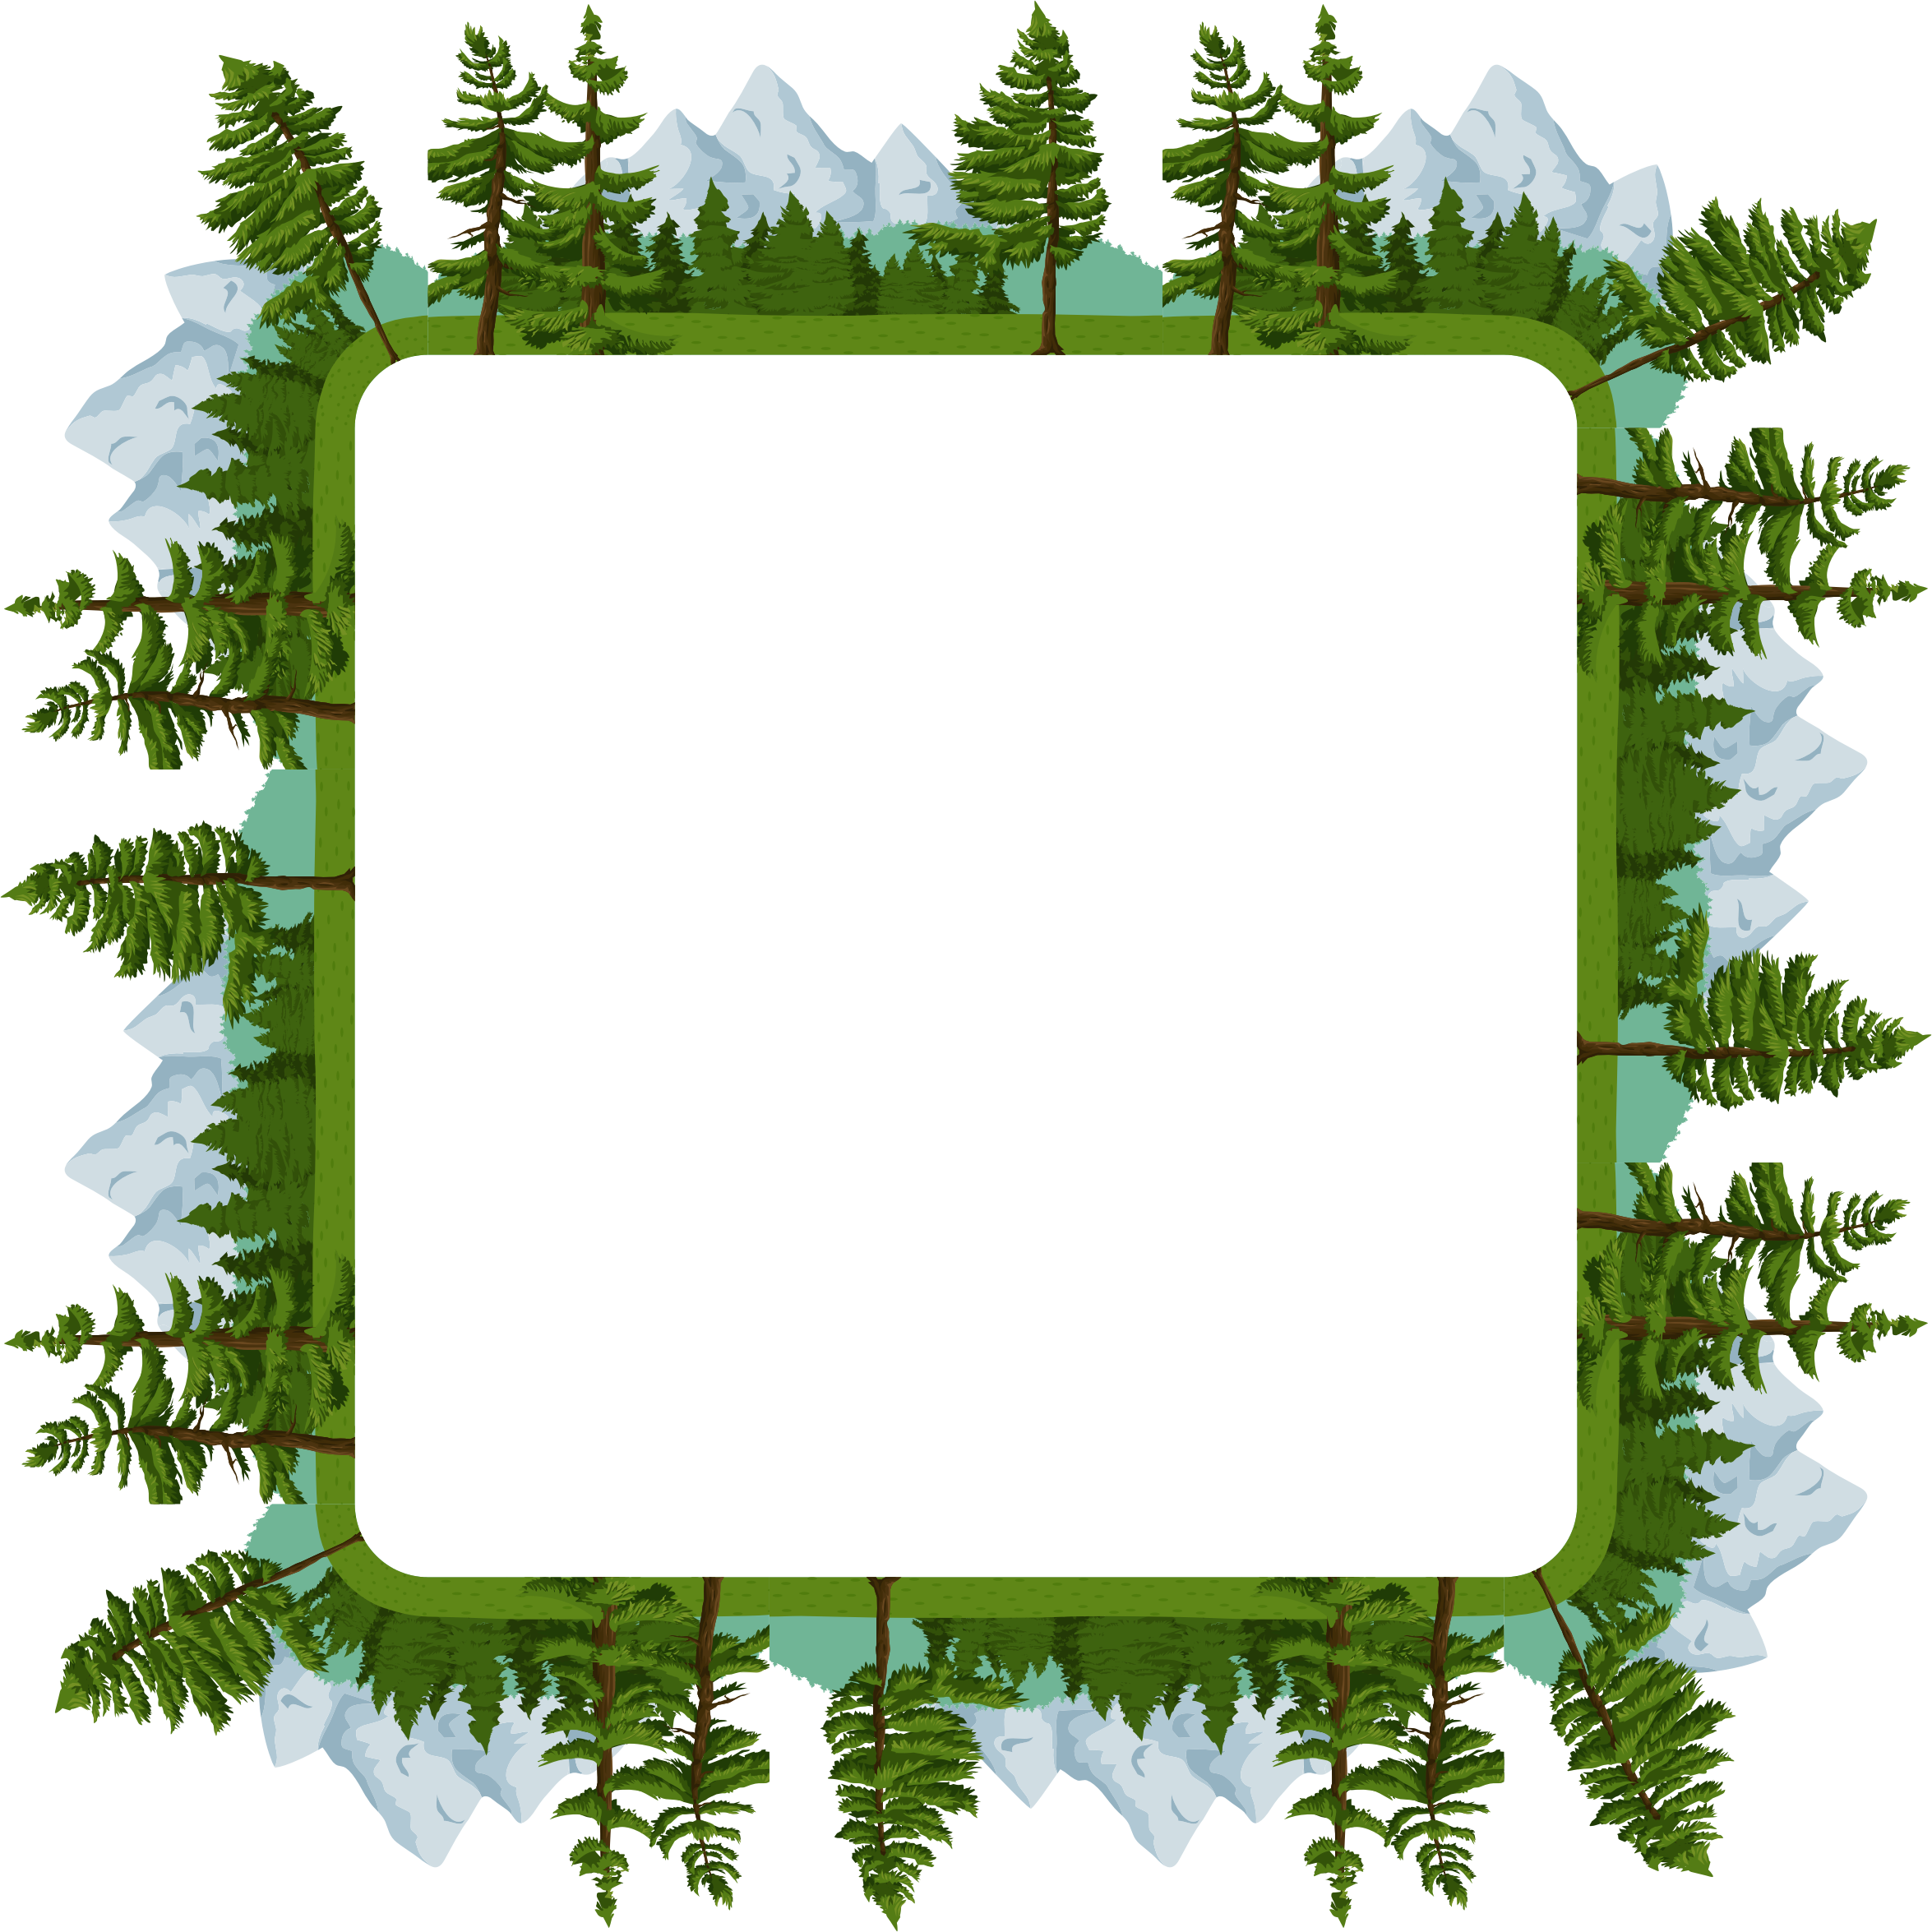 Nature clipart frame. Outdoors big image png